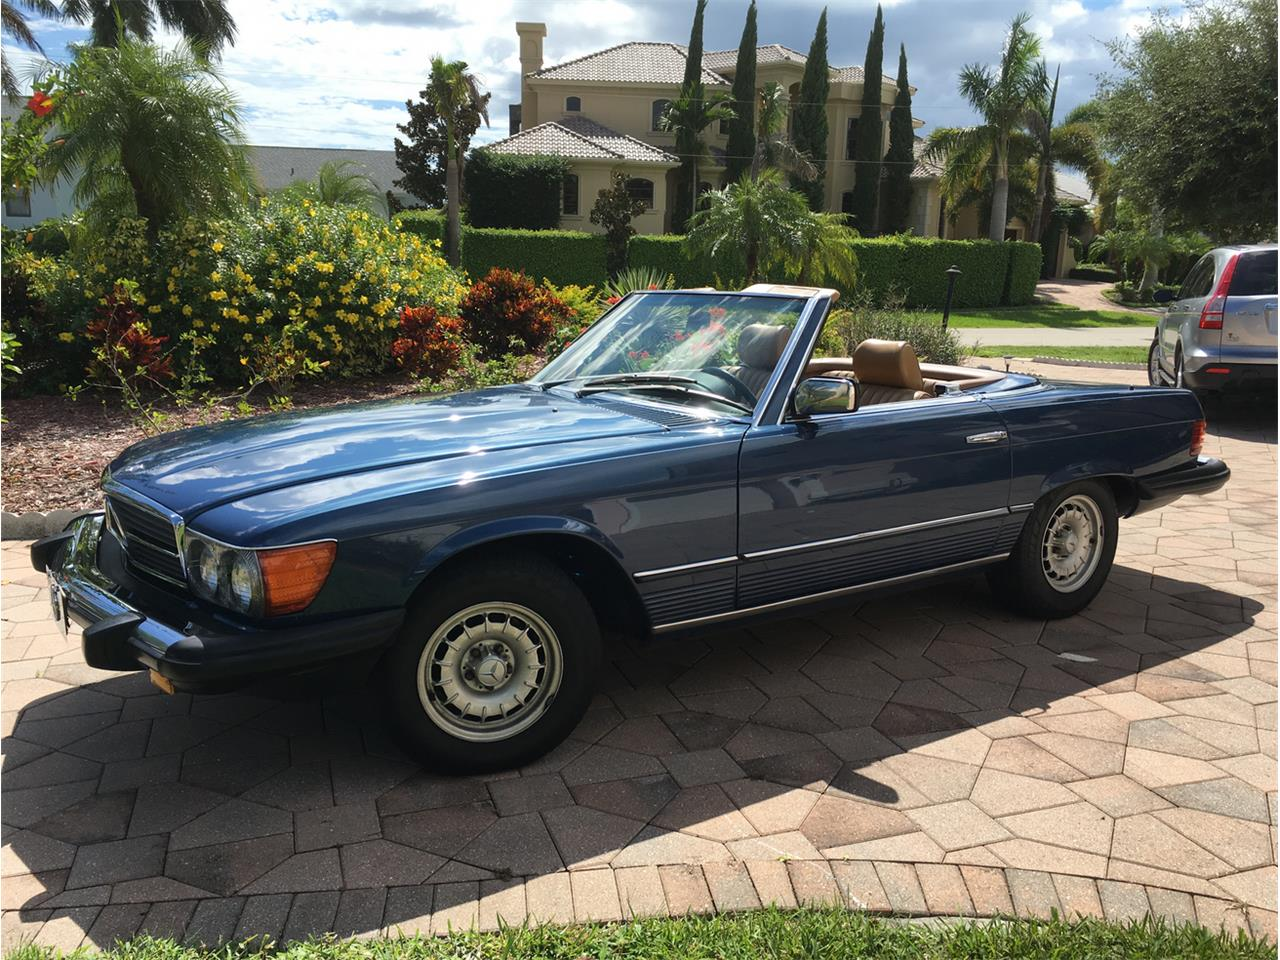 1985 Mercedes-Benz 380SL for sale in Marco Island, FL